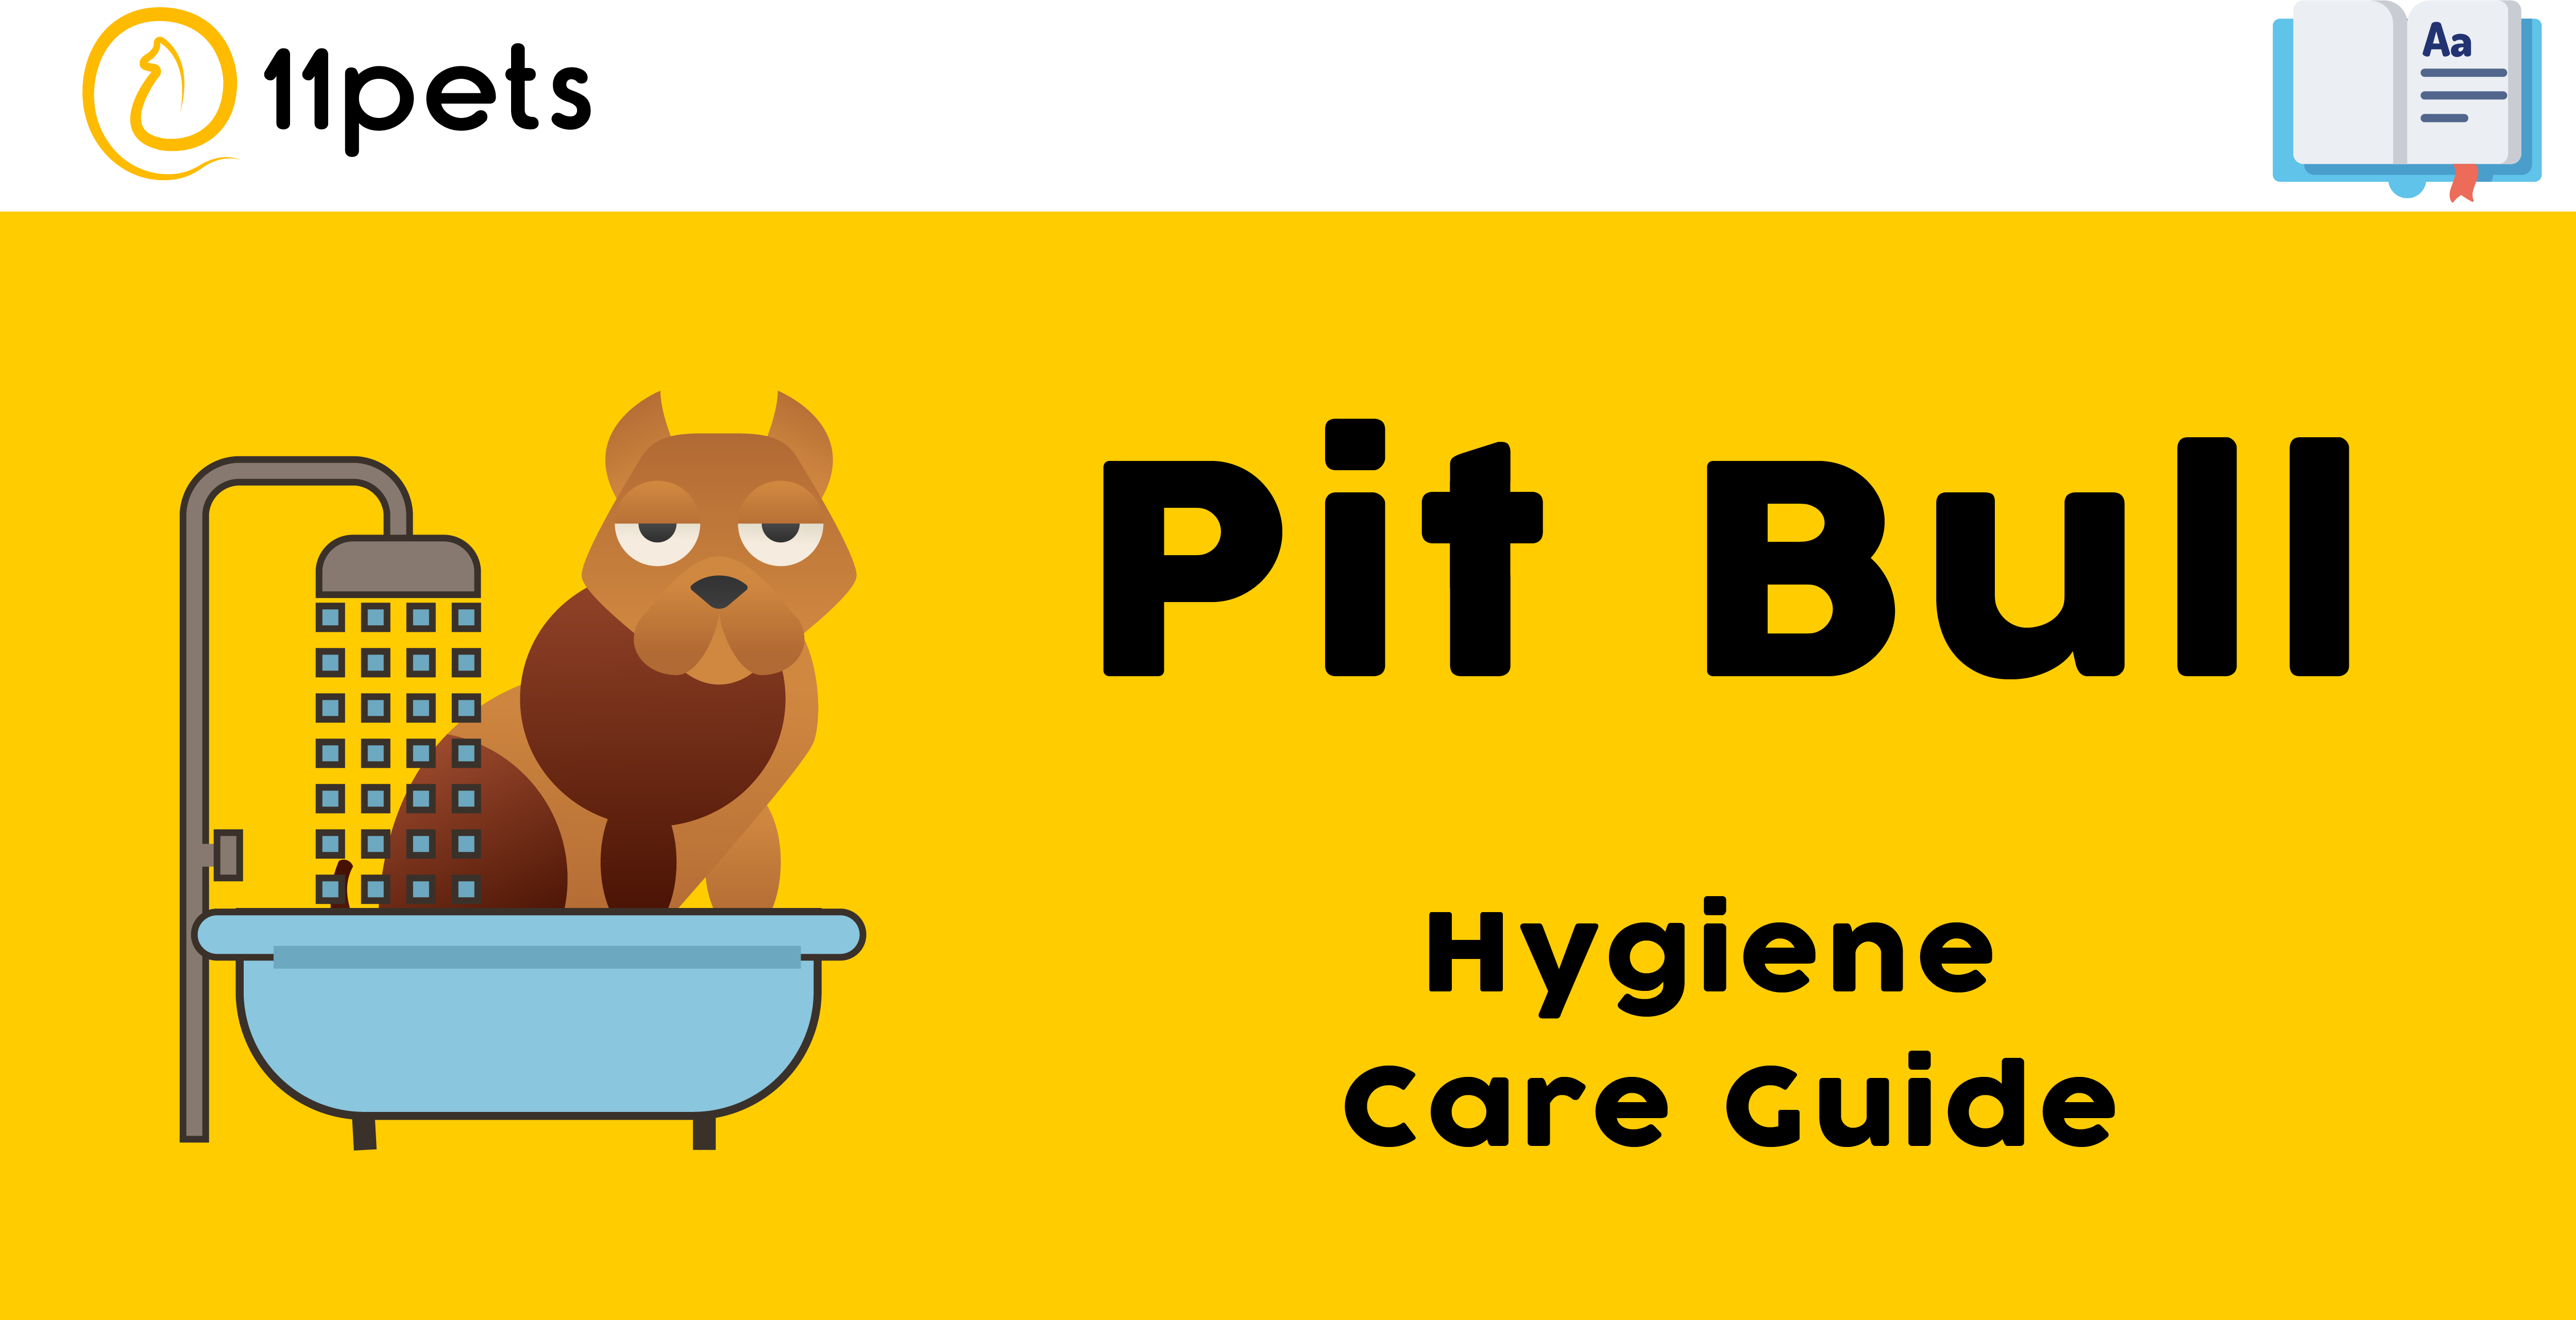 Hygiene Care Guide for Pit Bull